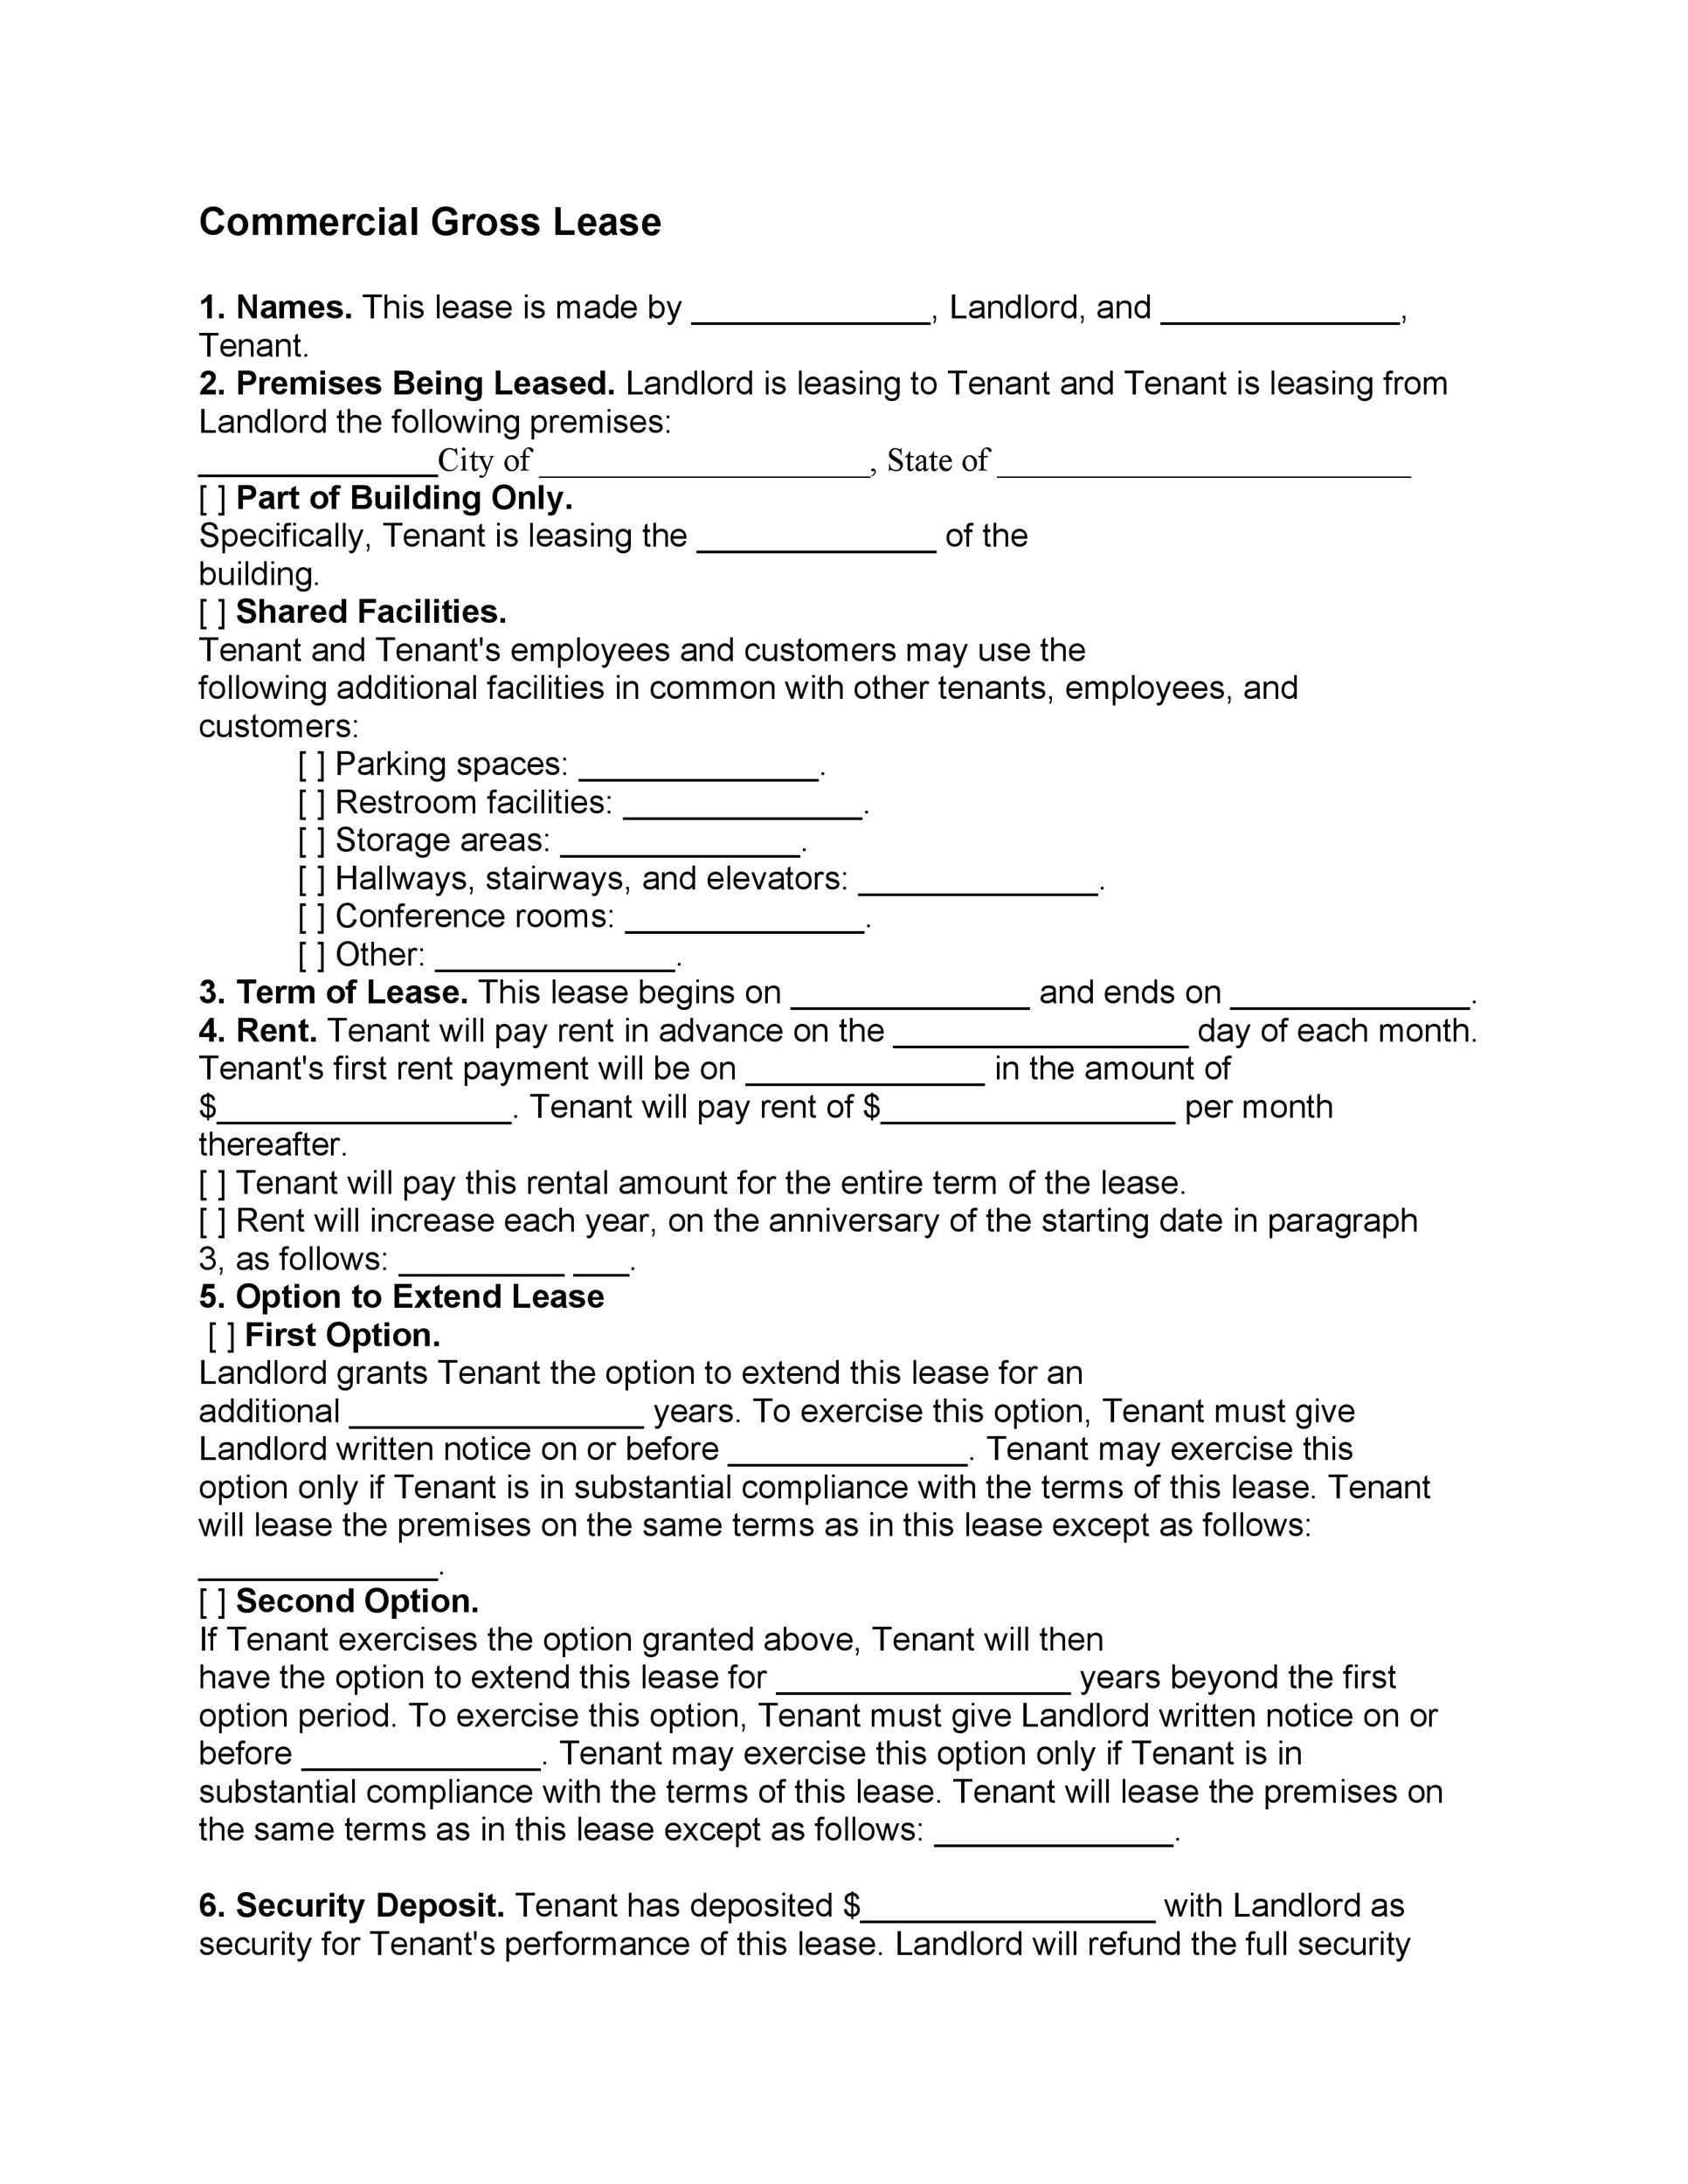 42 Rental Application Forms Lease Agreement Templates – Sample Commercial Security Agreement Template